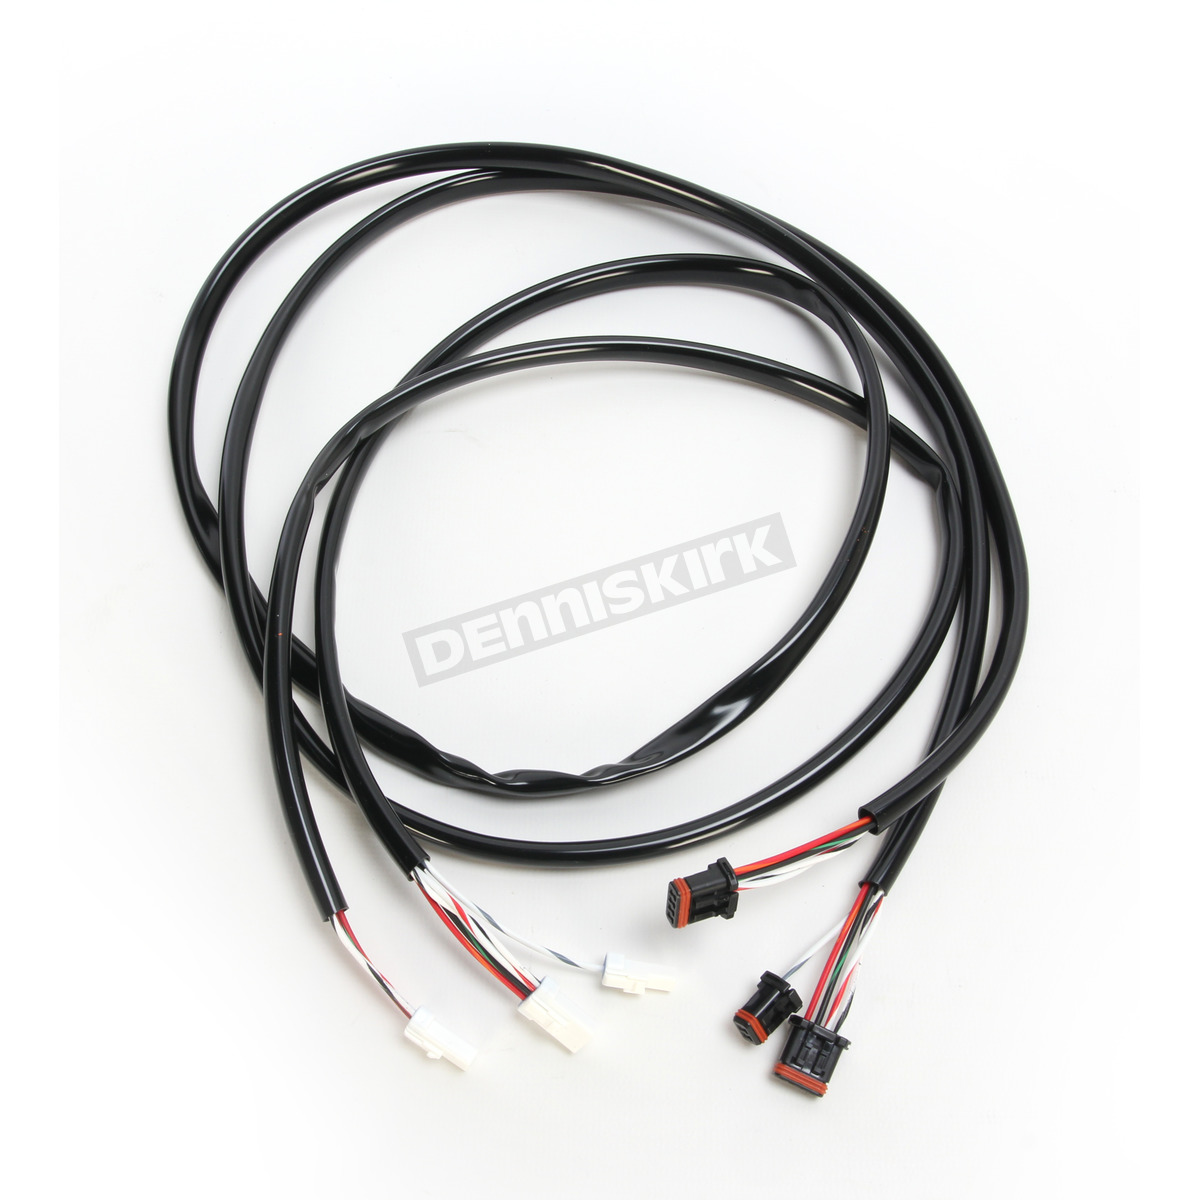 LA Choppers 45 in. Can-Bus Wiring Harness Extension - LA-8992-45  Harley-Davidson Motorcycle | Dennis KirkDennis Kirk